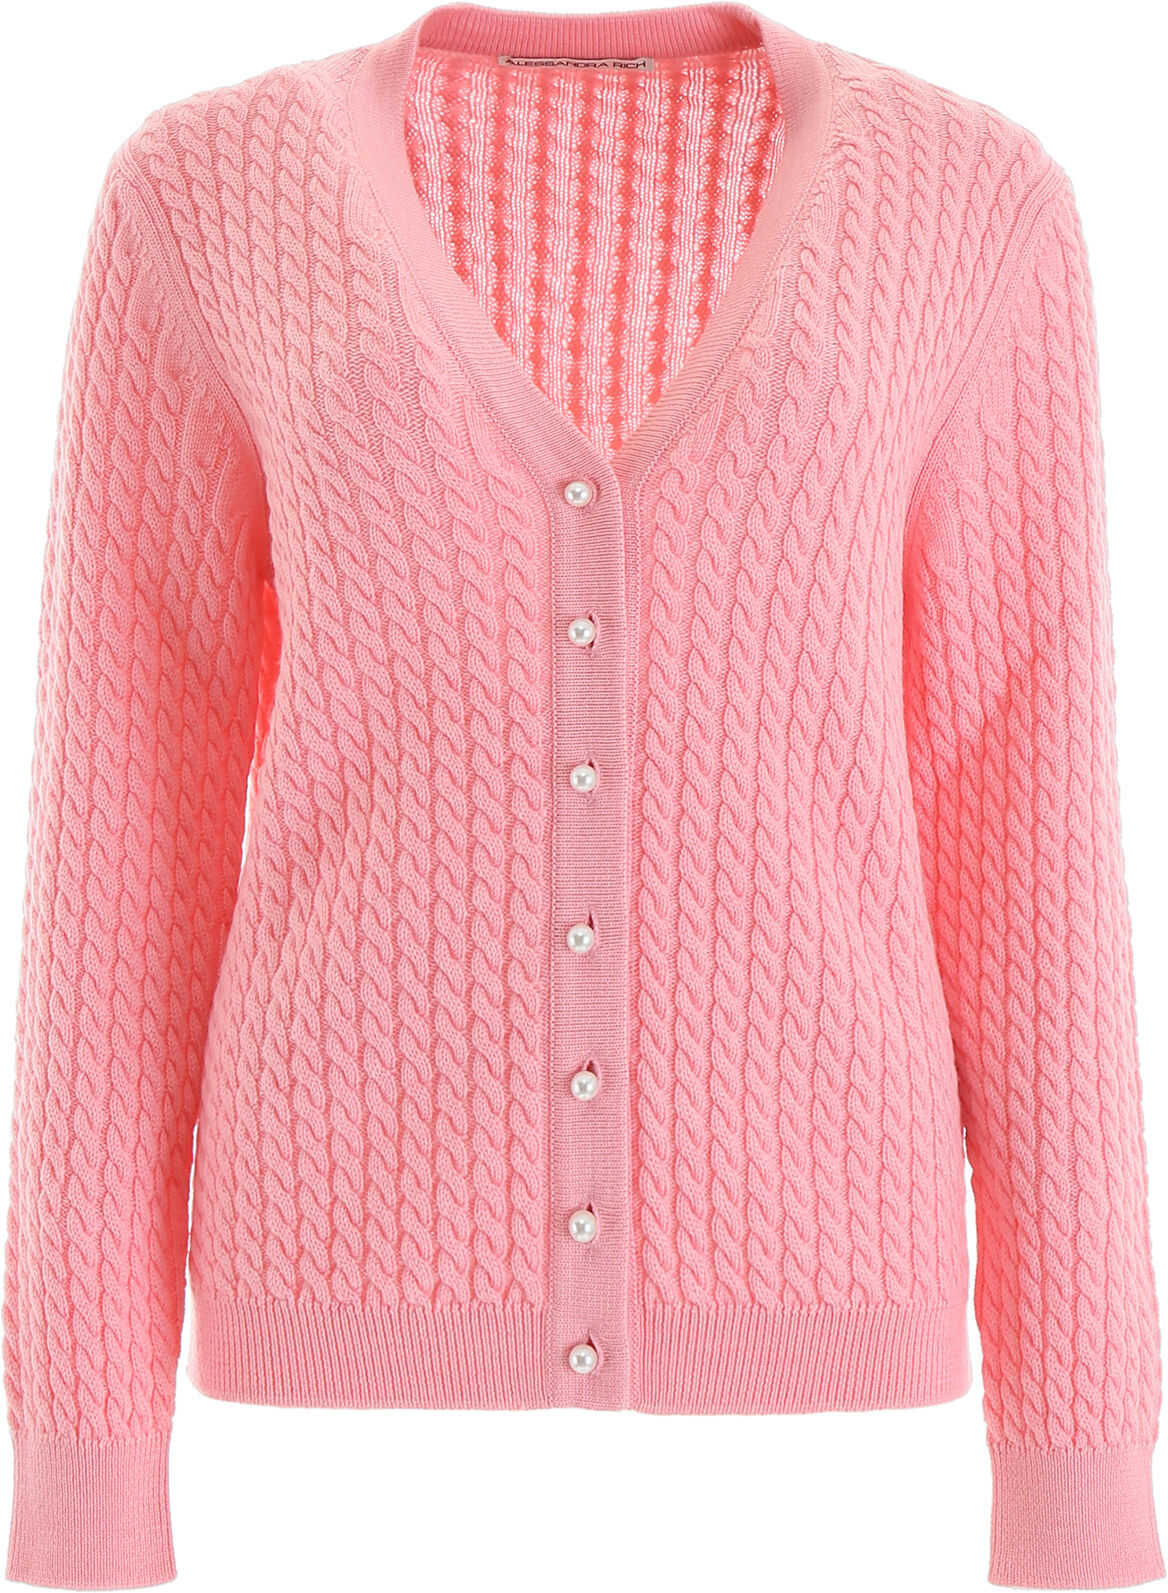 Alessandra Rich Cable-Knit Cardigan PINK